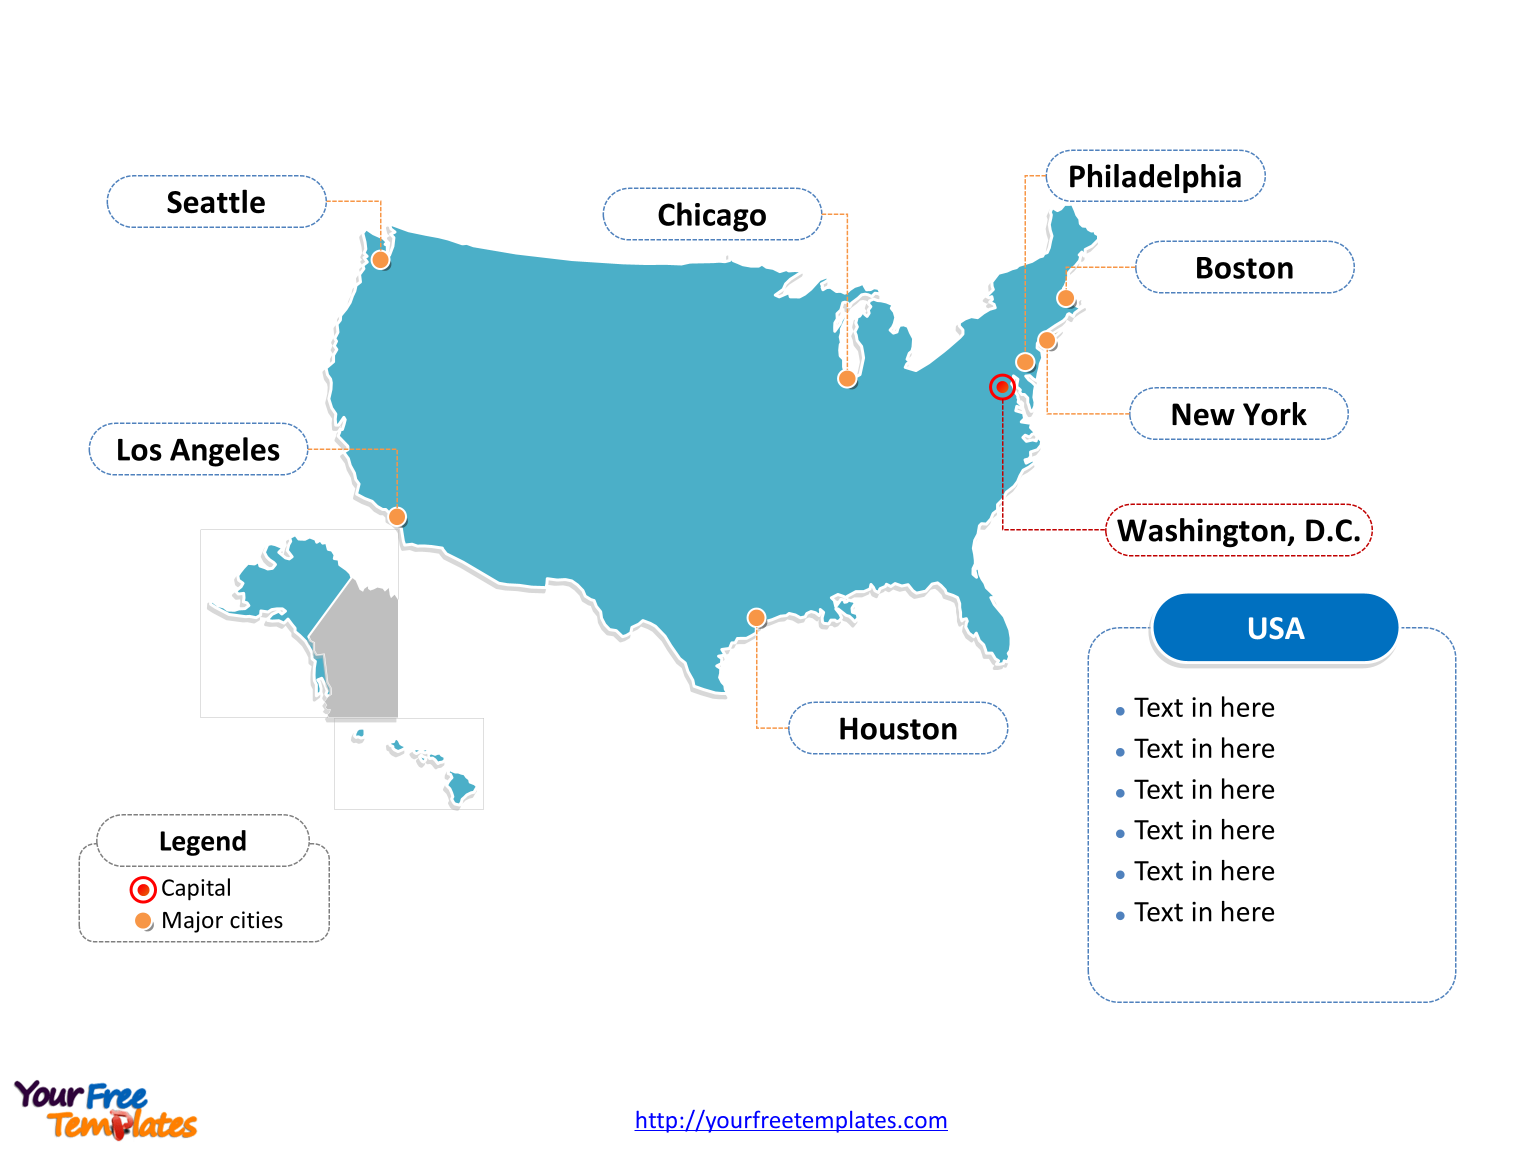 United States Map Ppt.Free Usa Powerpoint Map Free Powerpoint Templates